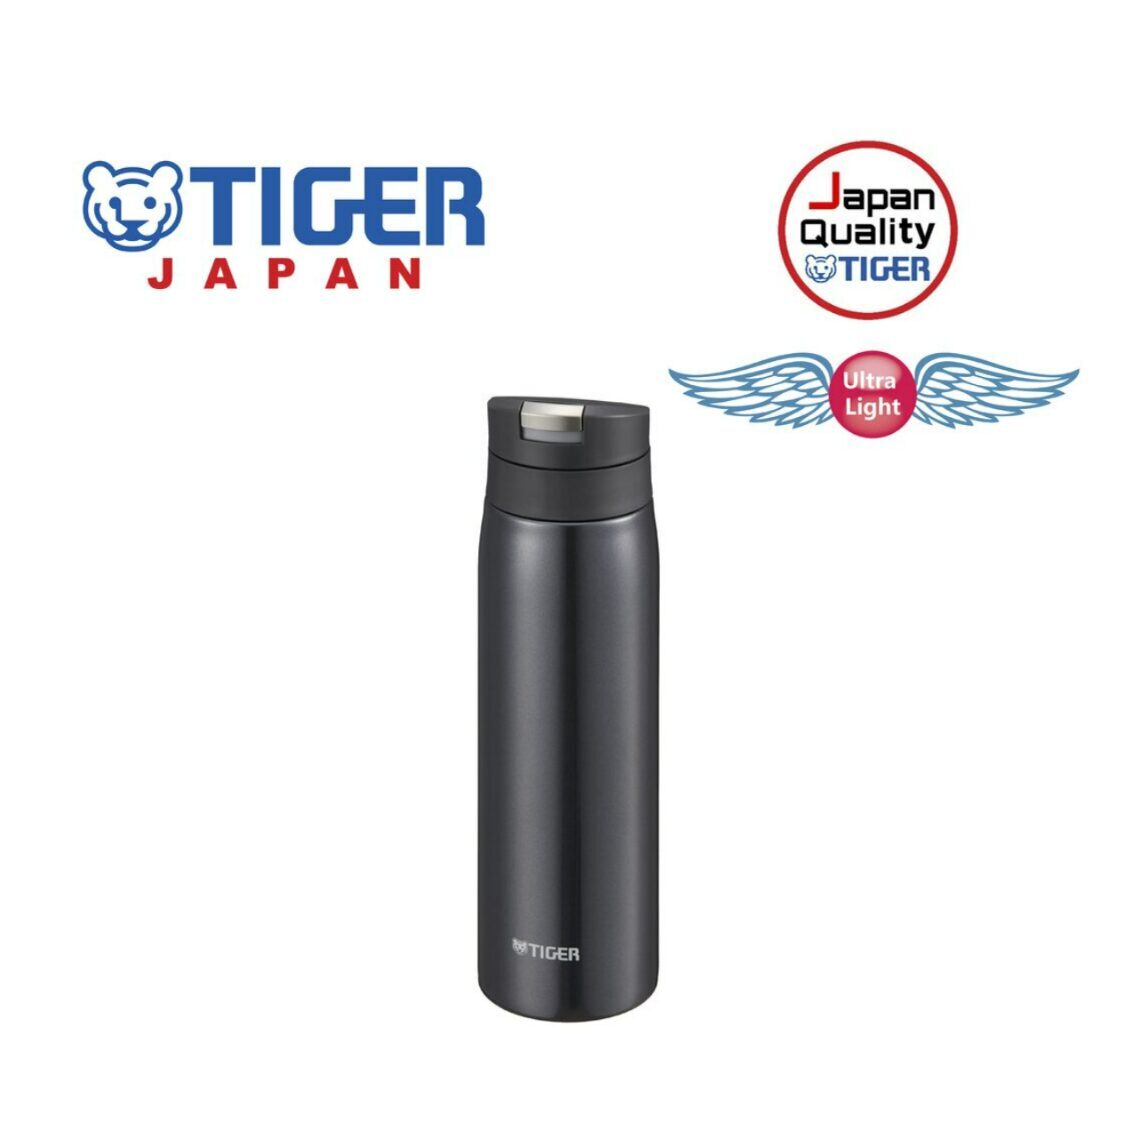 Tiger 500ml Double Stainless Steel Mug MCX-A501KL - Lamp Black